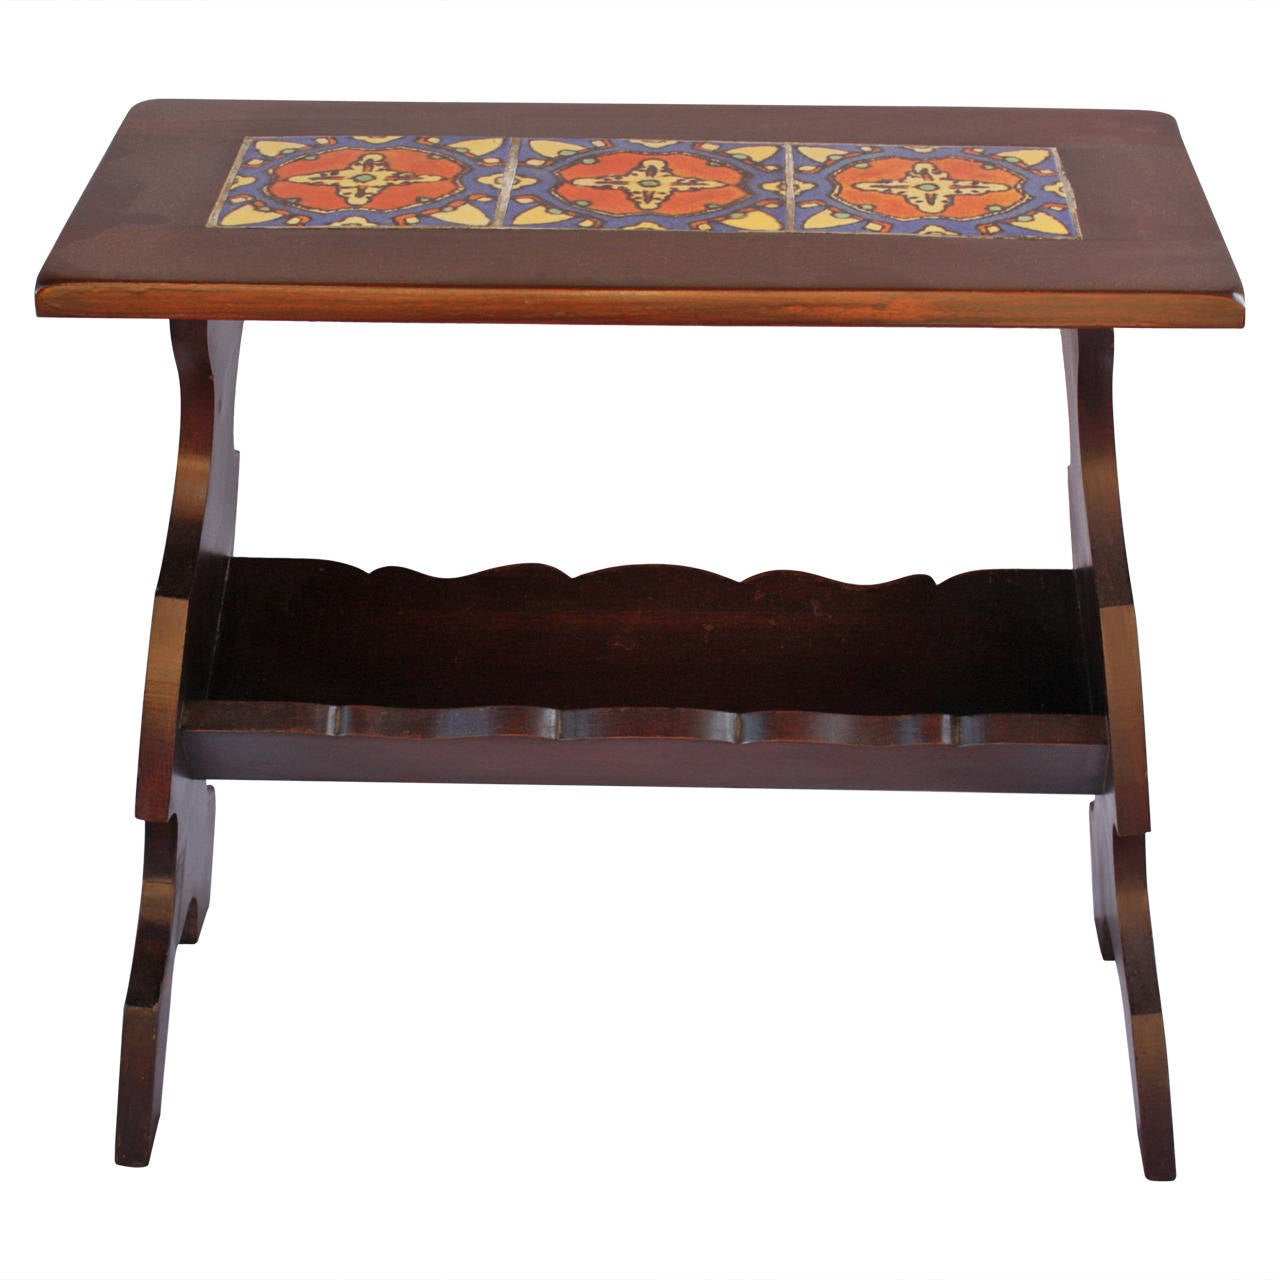 Malibu 1920s tile table at 1stdibs for L furniture more kelowna